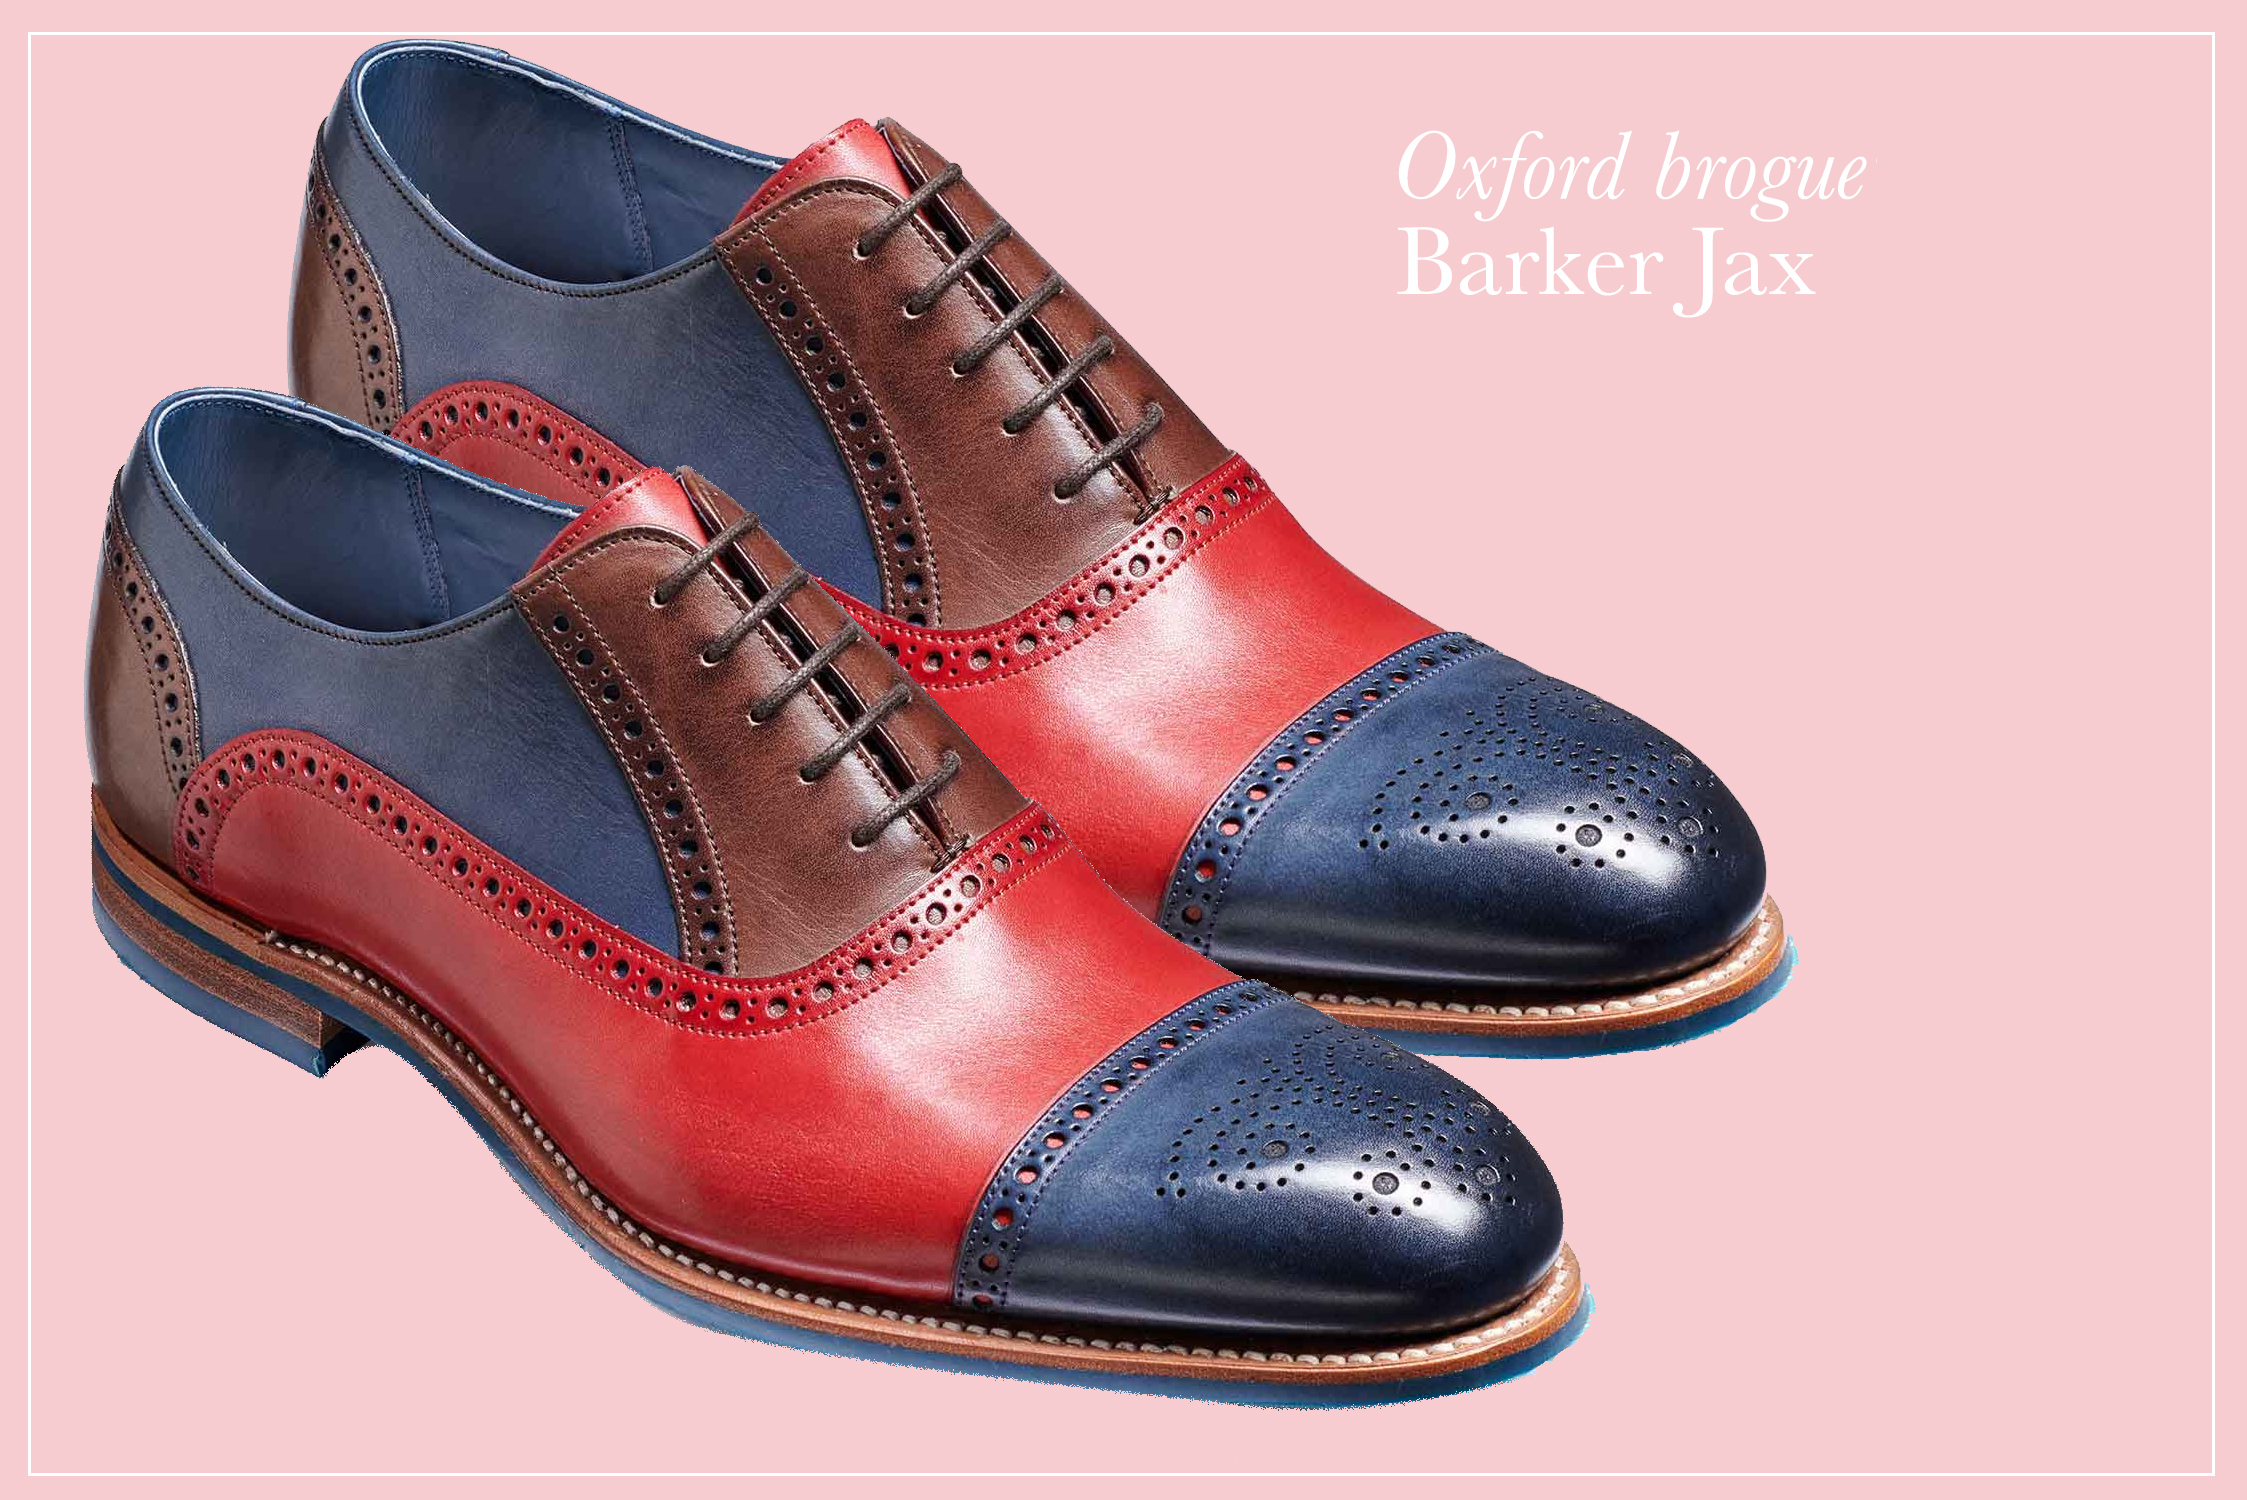 97748be9 Barker Jax is a twist on a classic semi brogue. Crafted using hand-painted  natural crust leather for a rich vibrant finish that is sure to make a  statement.